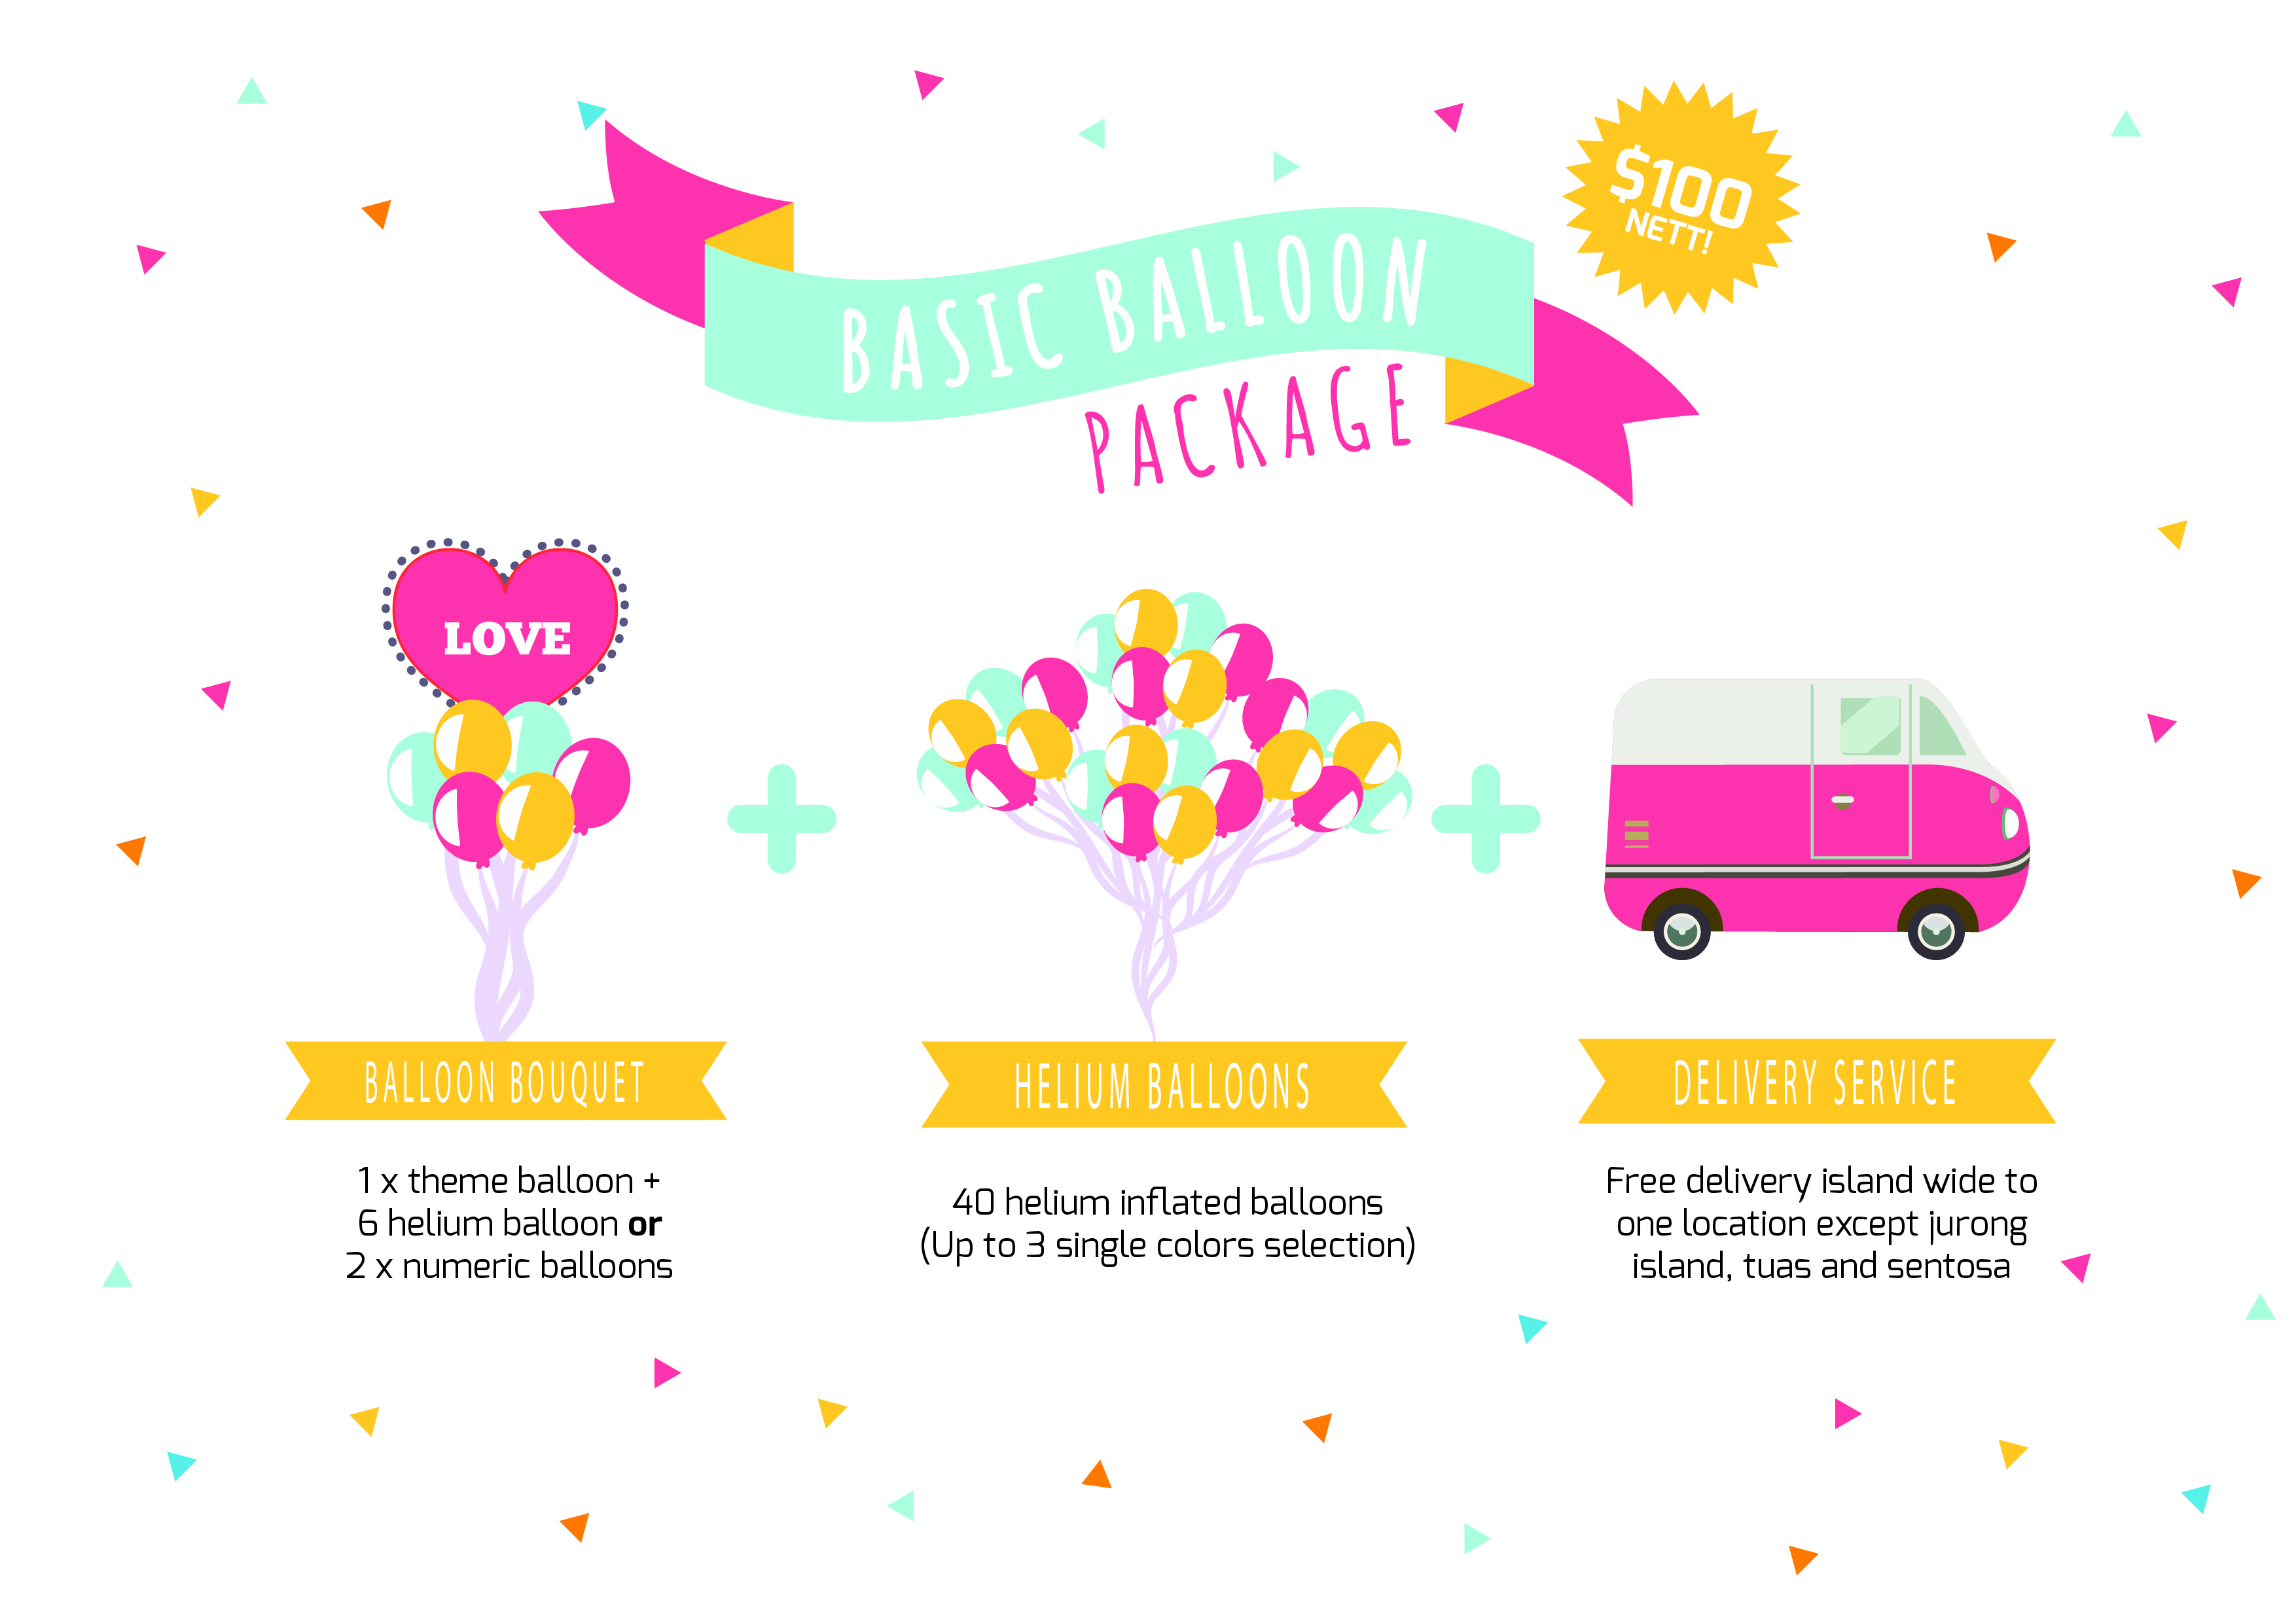 Basic Balloon Package - The Snack Korner